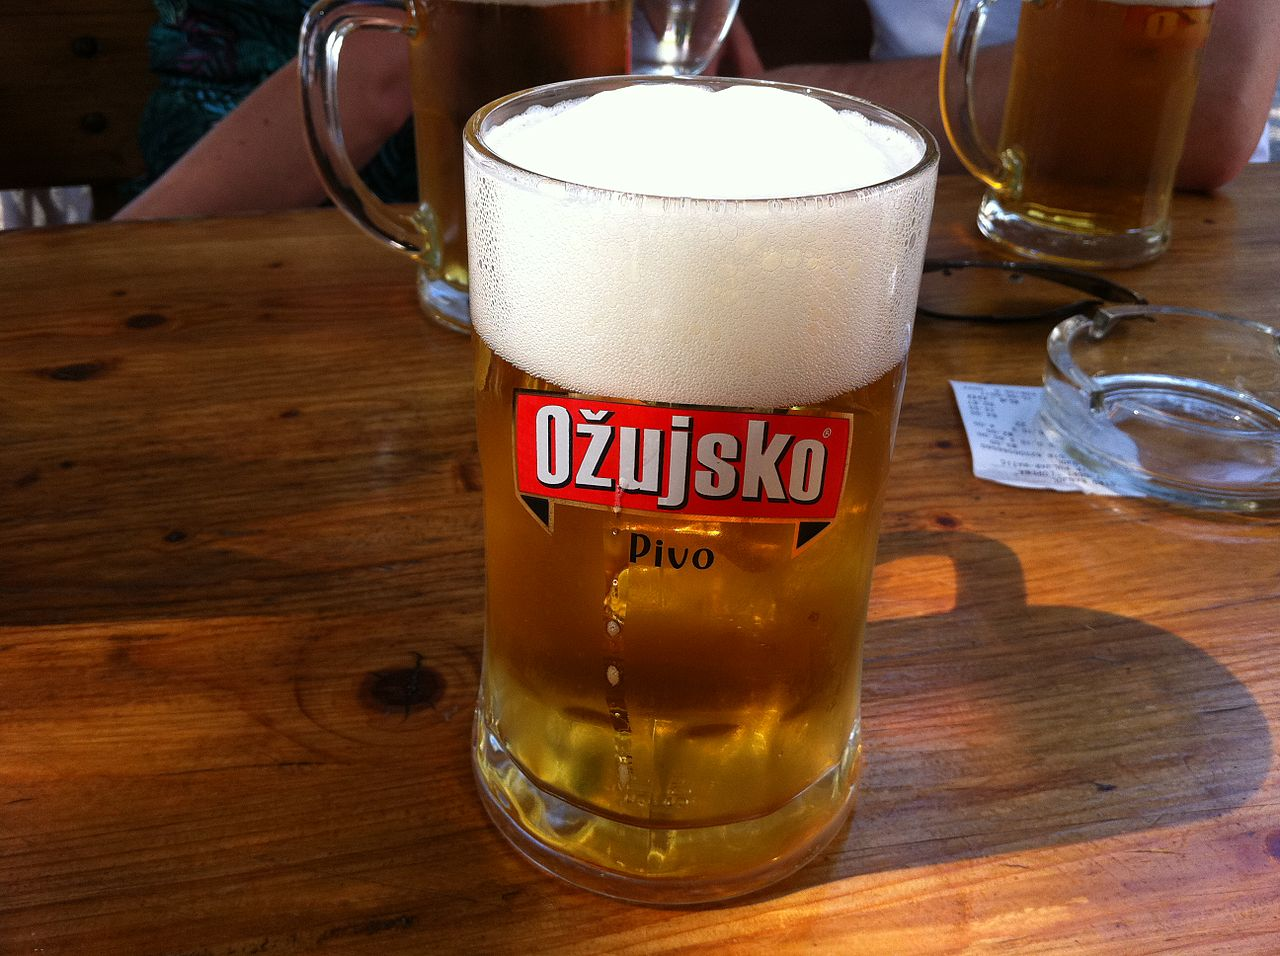 What Beer Do They Drink In Croatia?